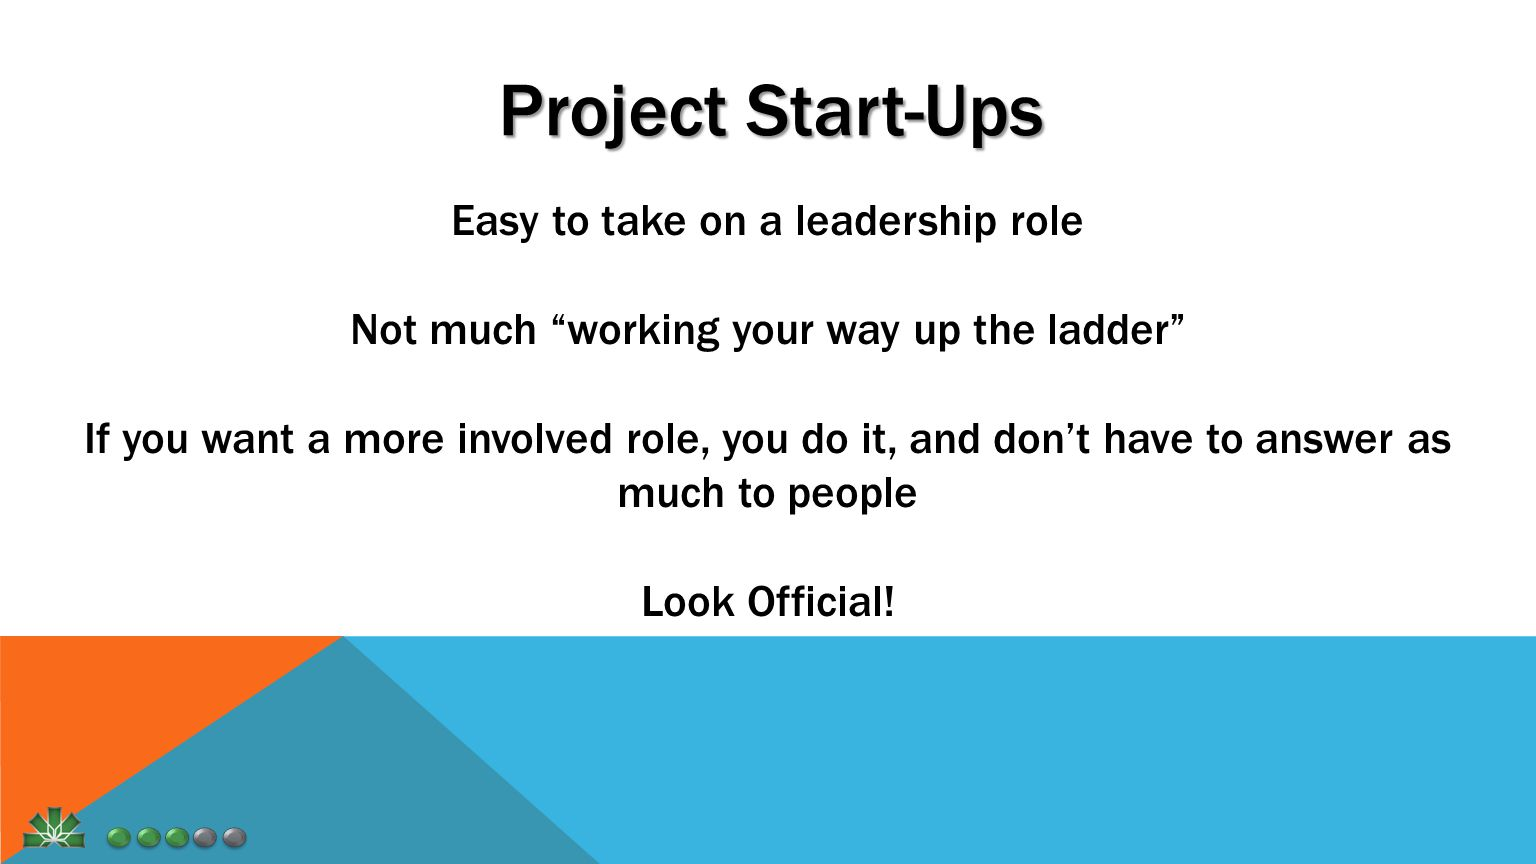 Project Start-Ups Easy to take on a leadership role Not much working your way up the ladder If you want a more involved role, you do it, and don't have to answer as much to people Look Official!